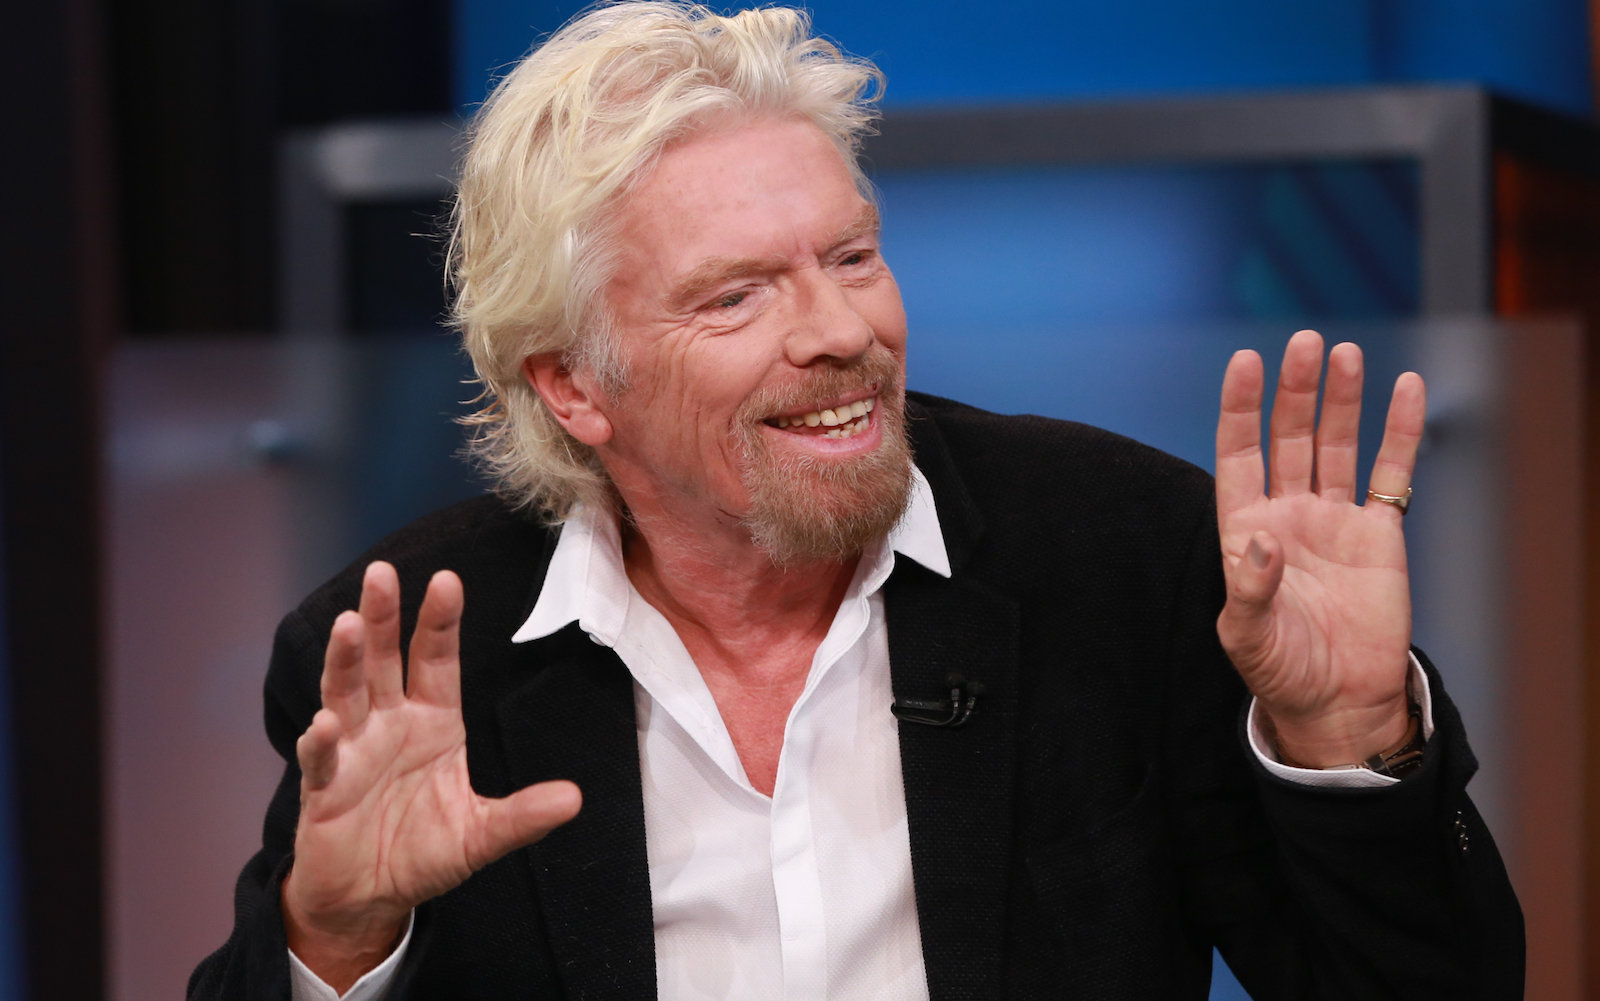 SQUAWK BOX -- Pictured: Sir Richard Branson, founder of Virgin Group, in an interview on September 28, 2015 -- (Photo by: David Orrell/CNBC/NBCU Photo Bank via Getty Images)